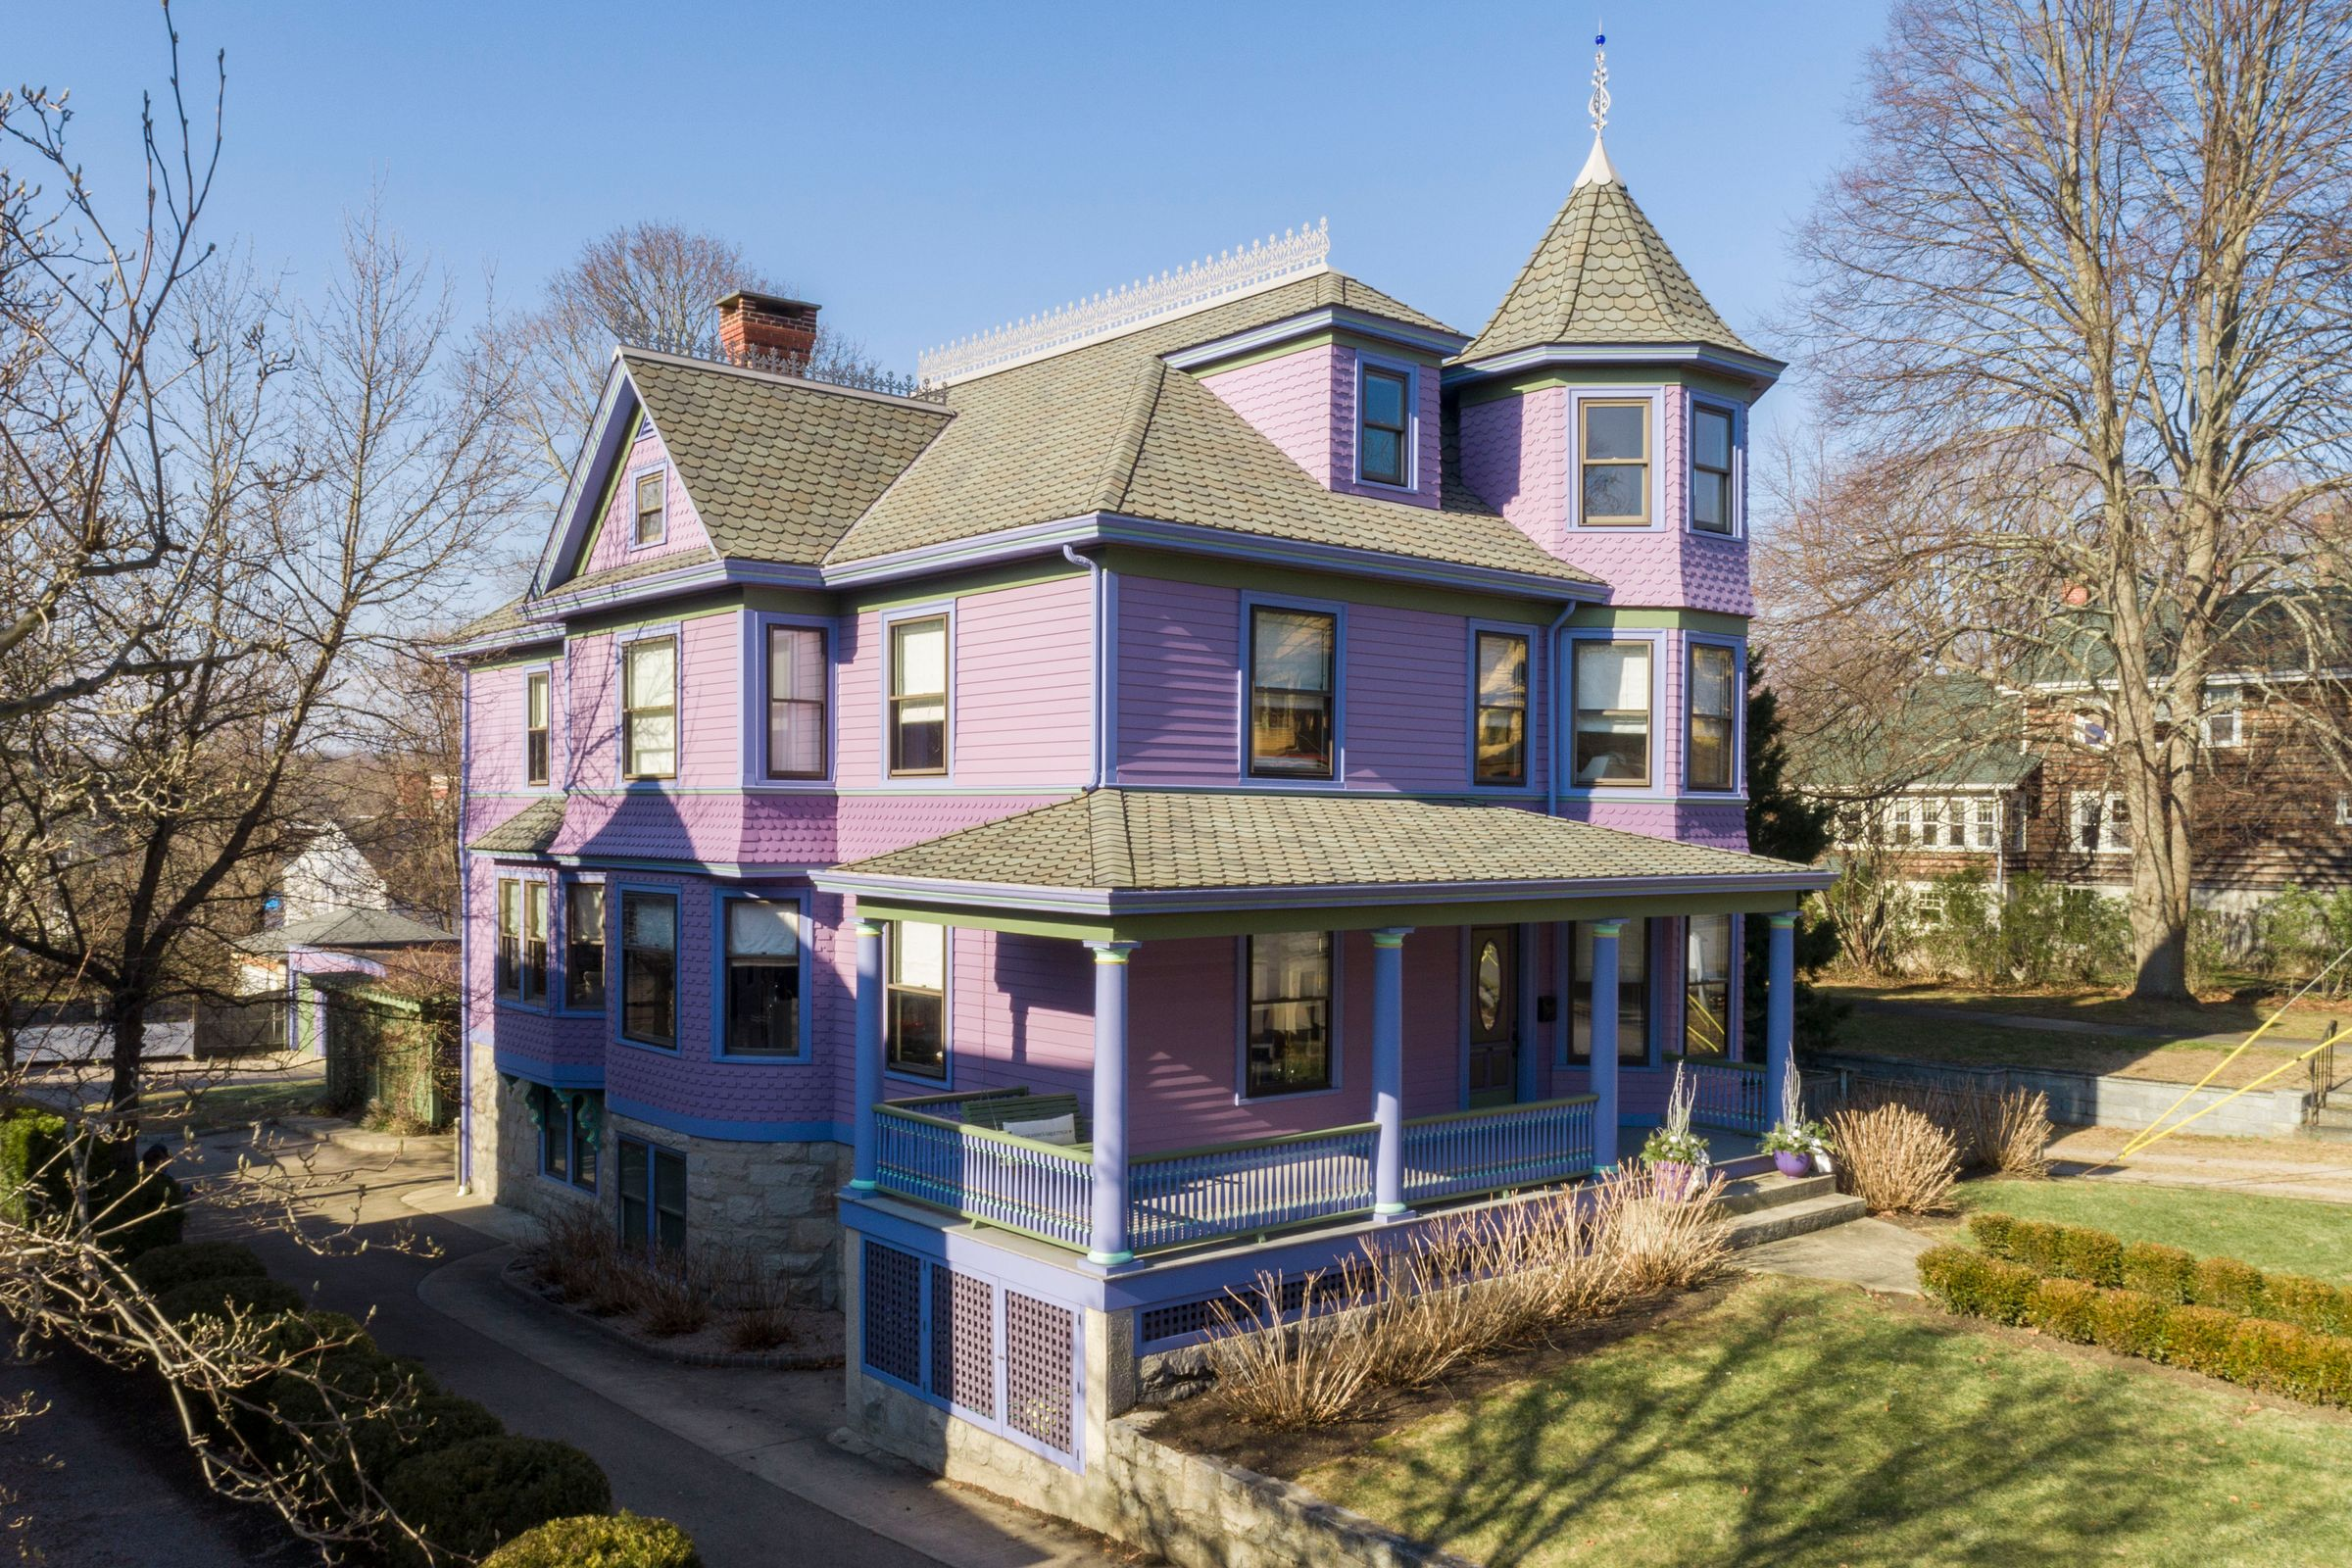 HOUSE LUST: A PURPLE VICTORIAN IS ON THE MARKET IN WESTERLY